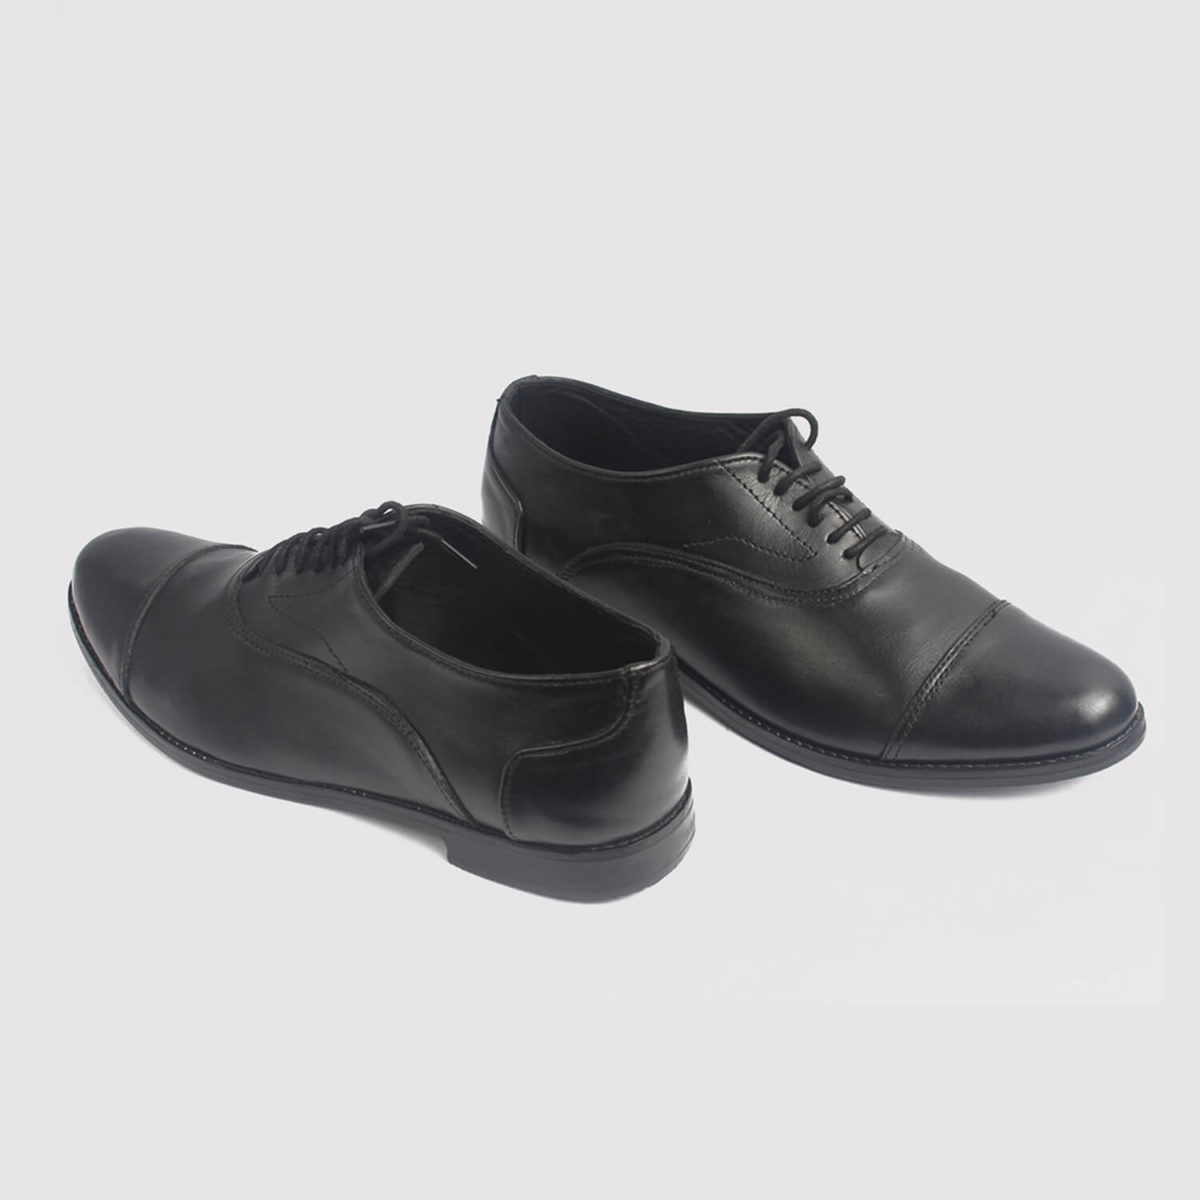 oxford black leather shoes by zorkle shoes lagos nigeria